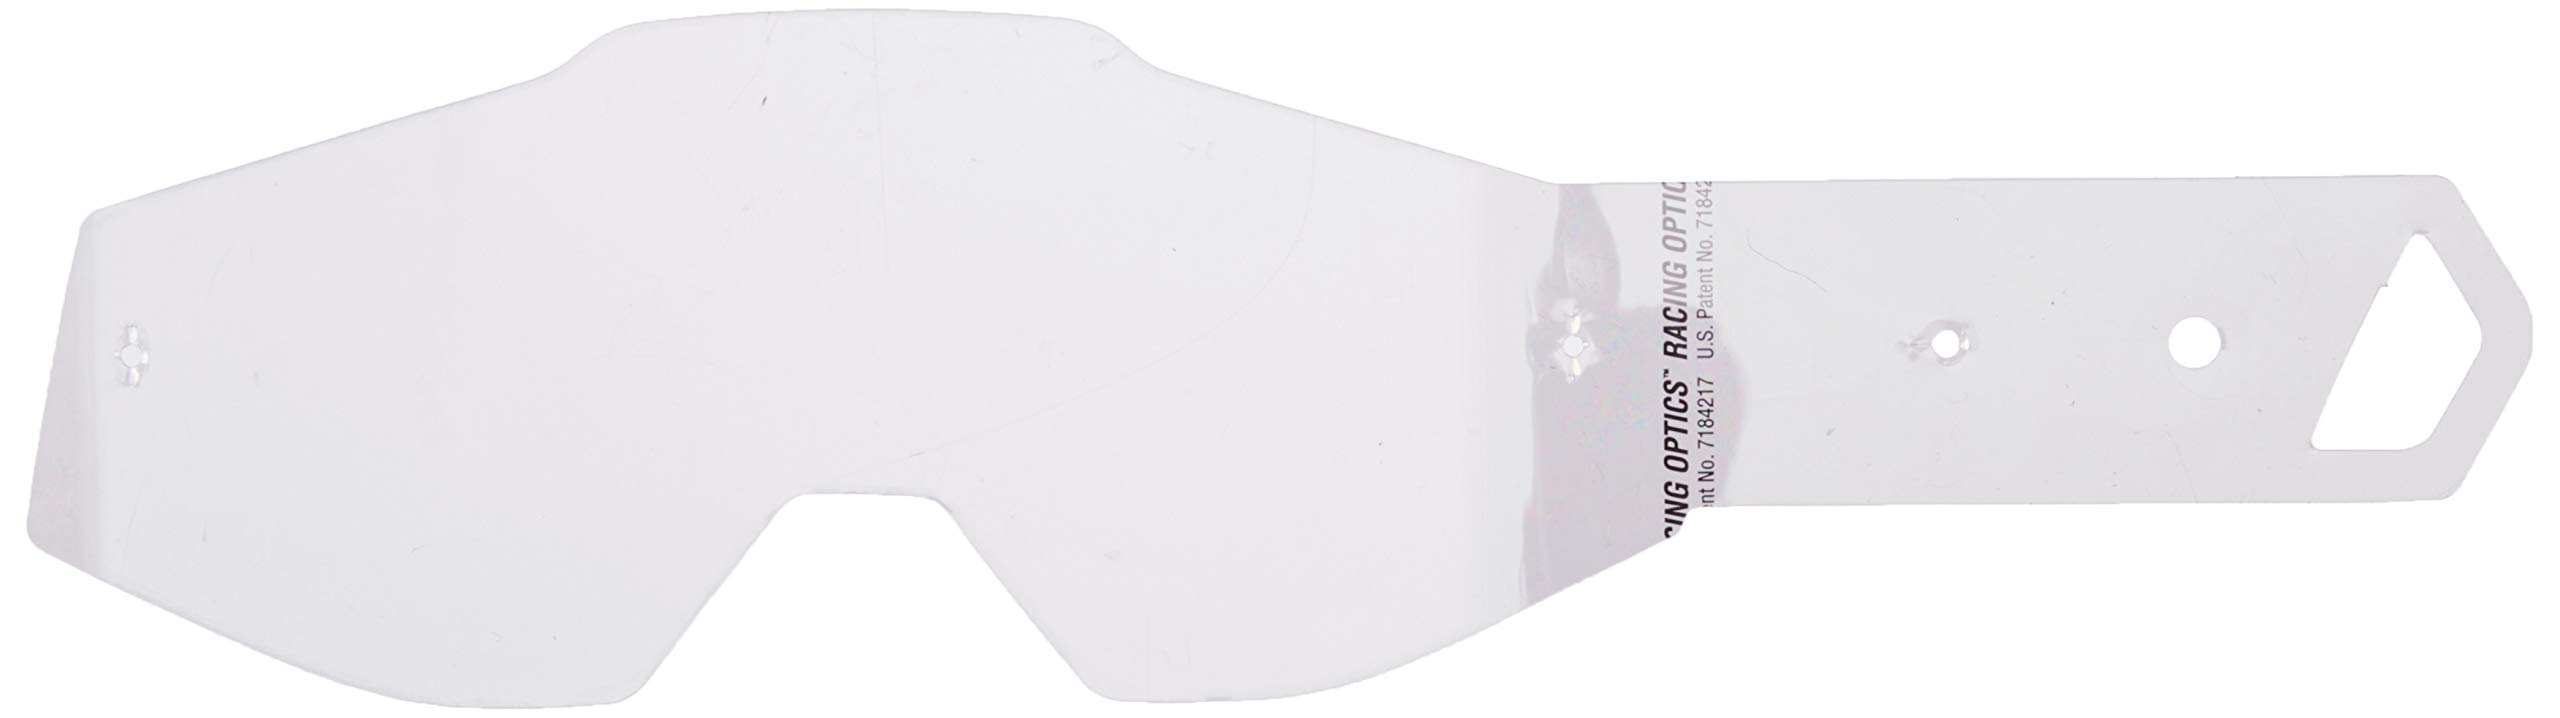 100% 51010-010-02 Laminated Tear-Offs ,Clear Lens, Free Size by 100%